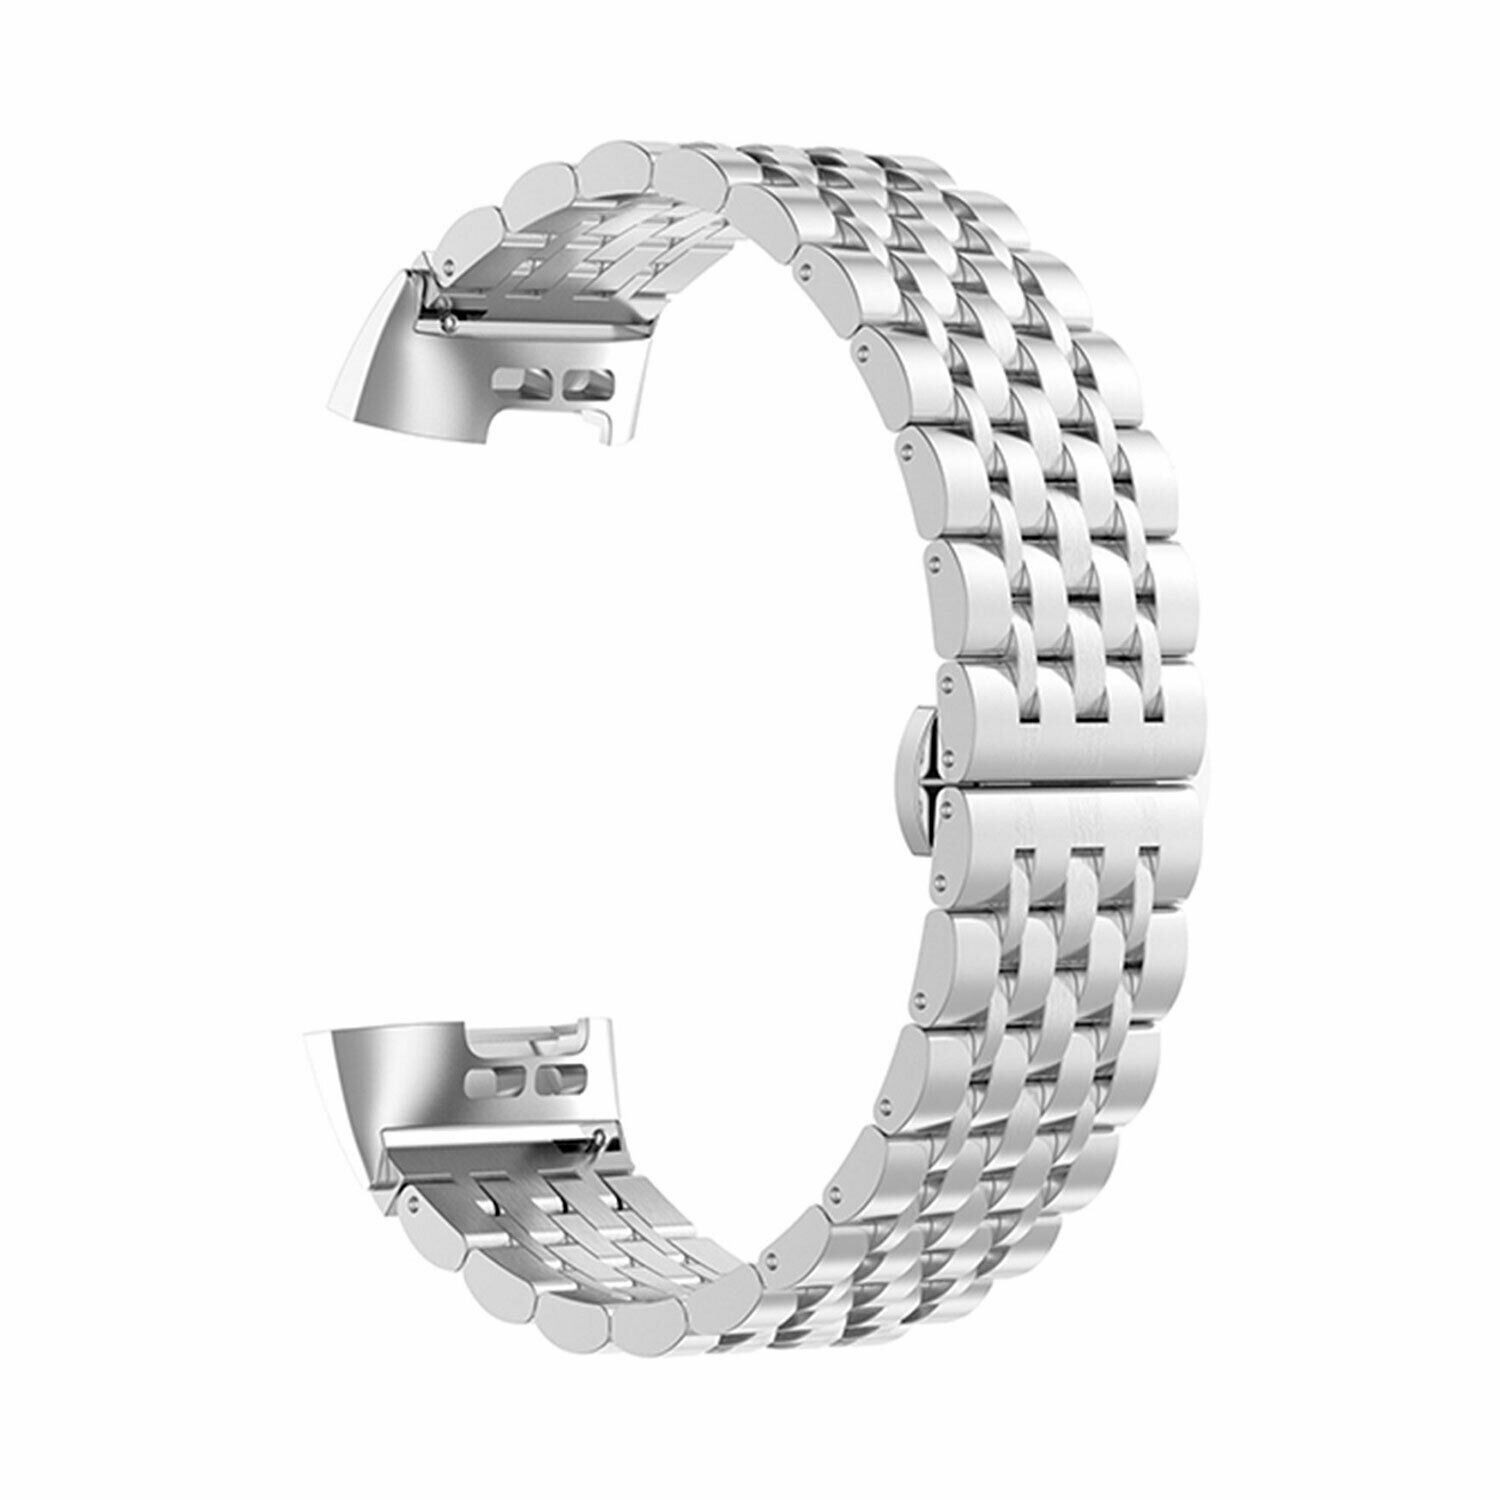 Aquarius Metal Watch Band for Fitbit Charge 3 Silver